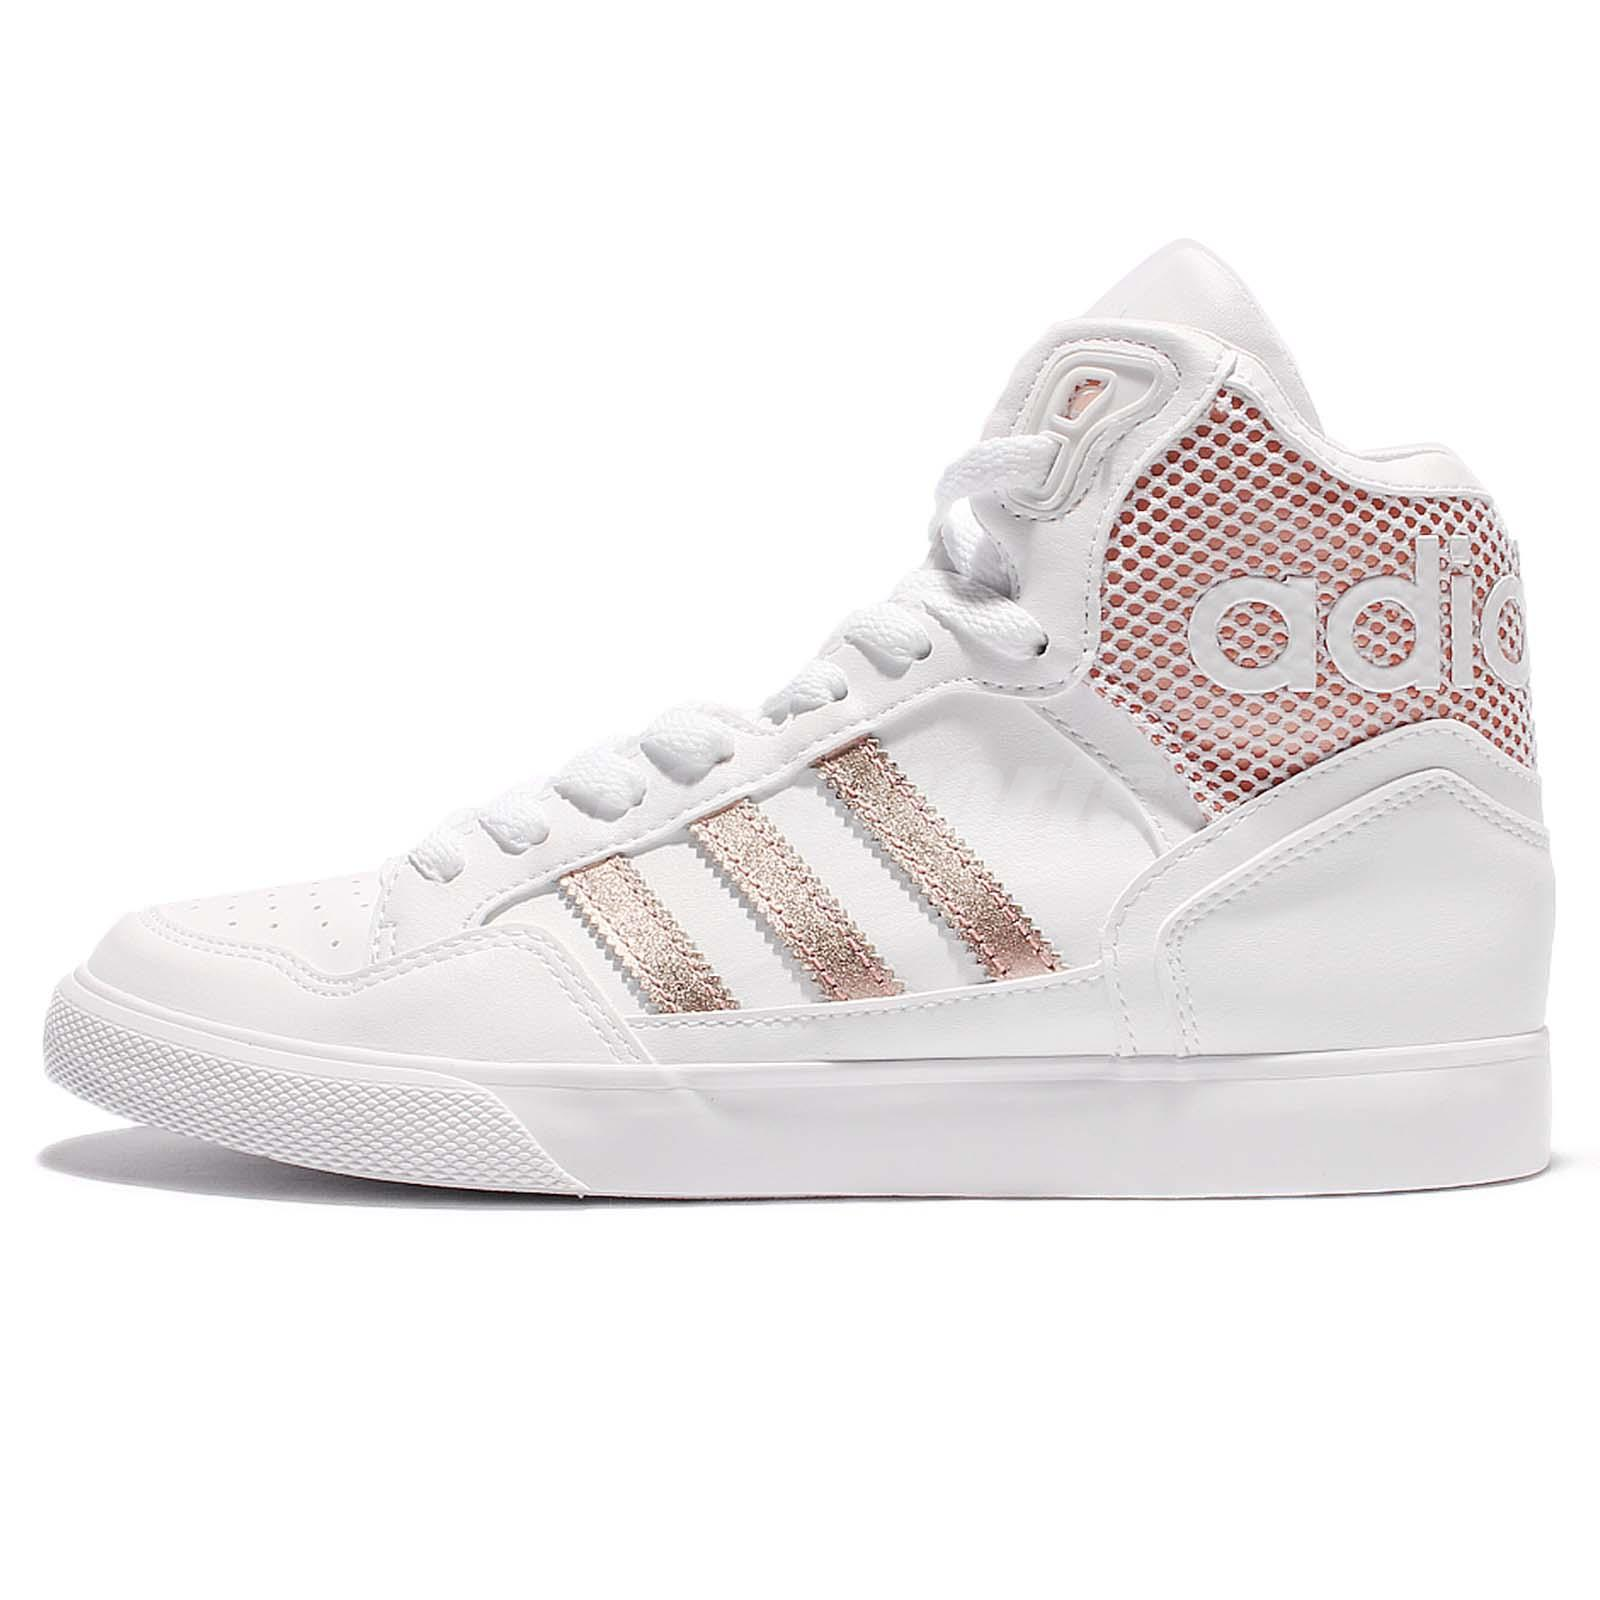 adidas originals extaball w white rose gold women casual. Black Bedroom Furniture Sets. Home Design Ideas